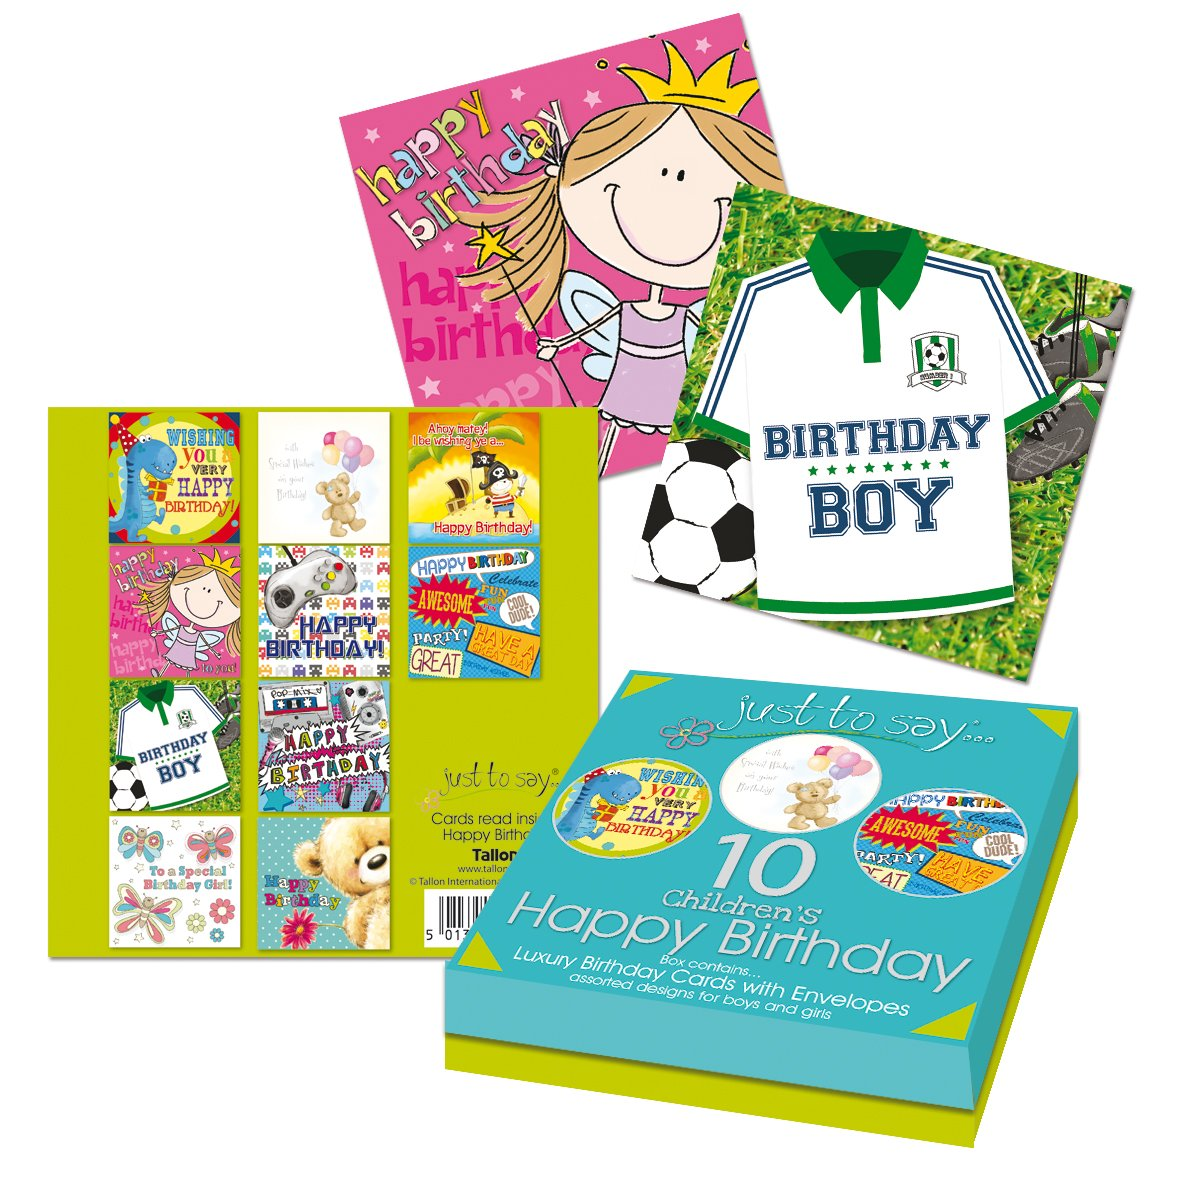 Tallon Just To Say Kids Birthday Card Box of 10 Amazoncouk – Birthday Cards Children